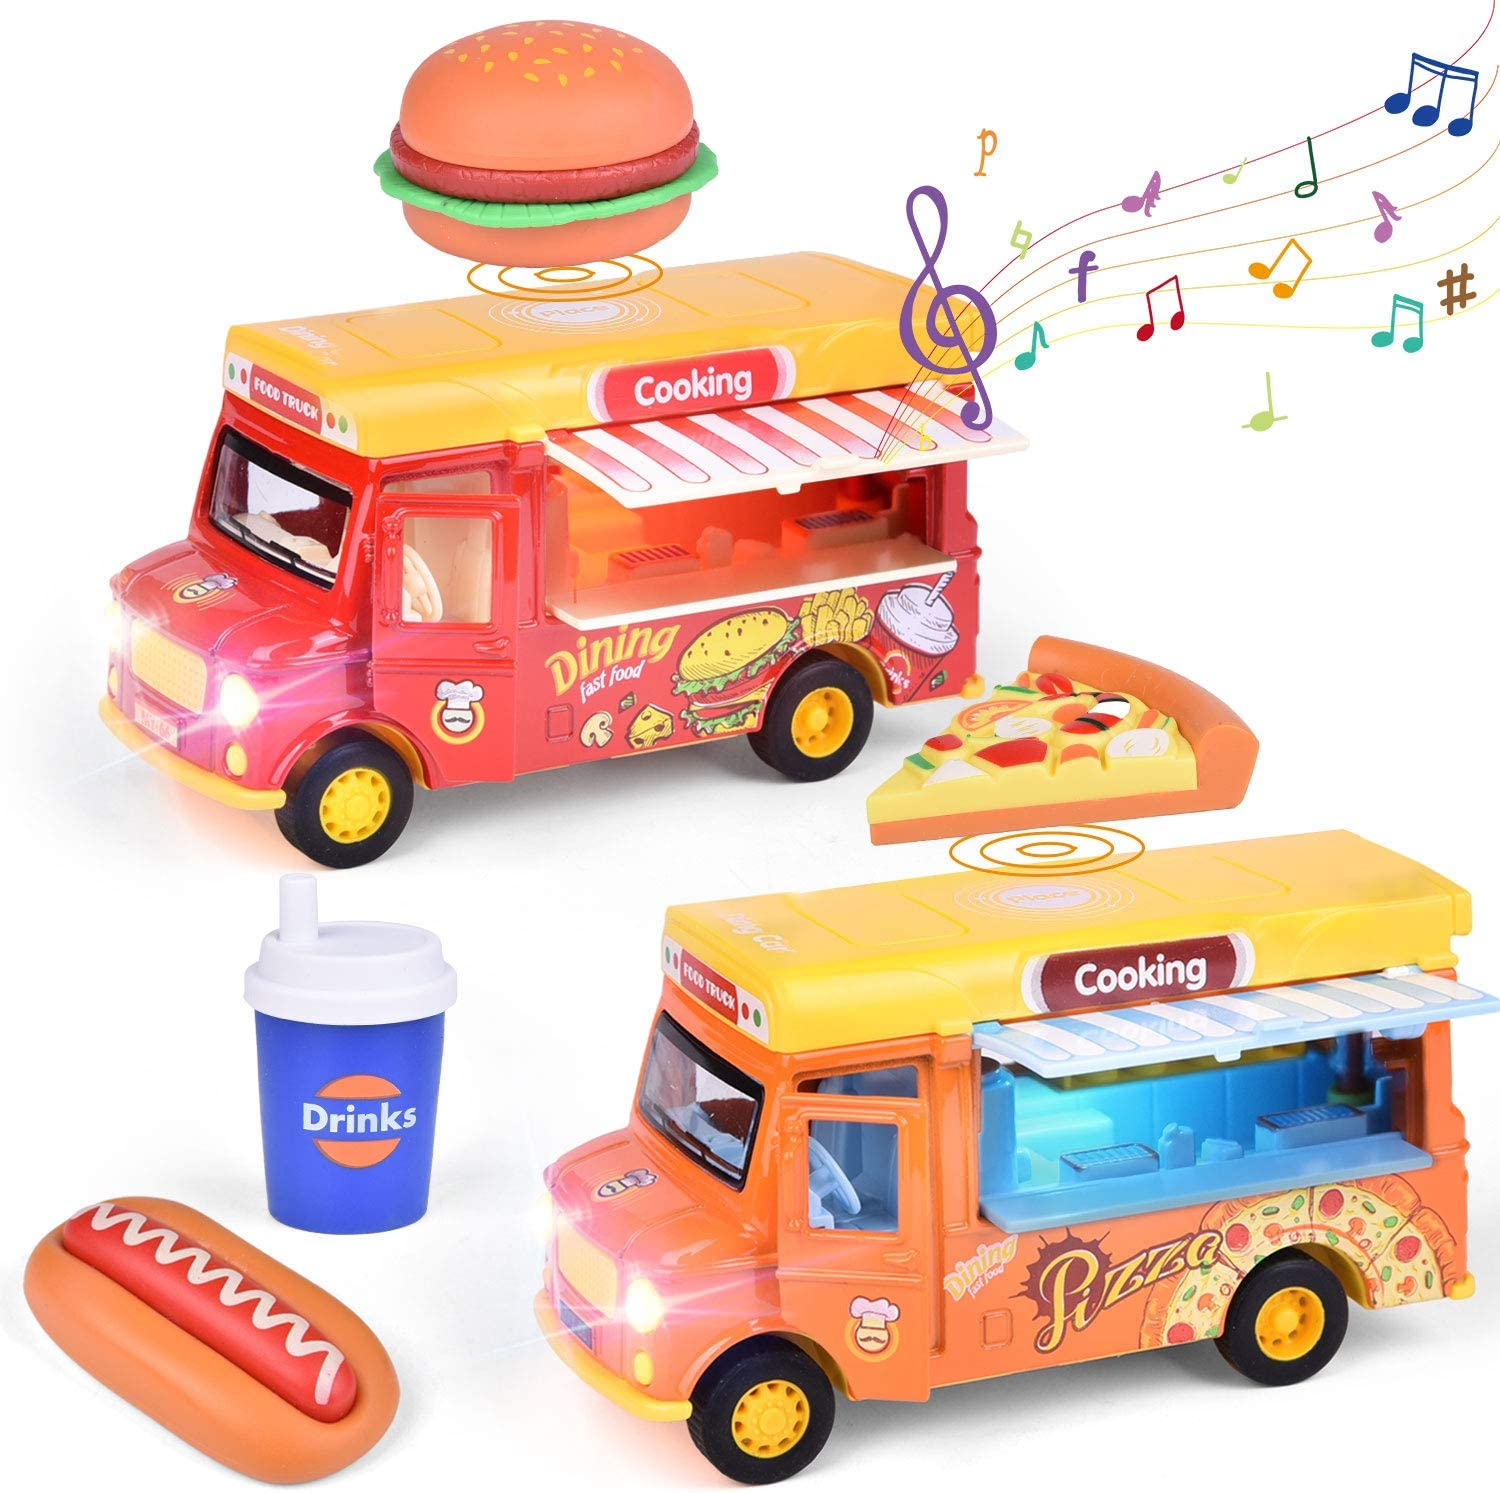 FUN LITTLE TOYS 2 Pack Pull Back Cars Food Trucks with Music and Light, Die-Cast Cars Gift for Toddler Girls and Boys